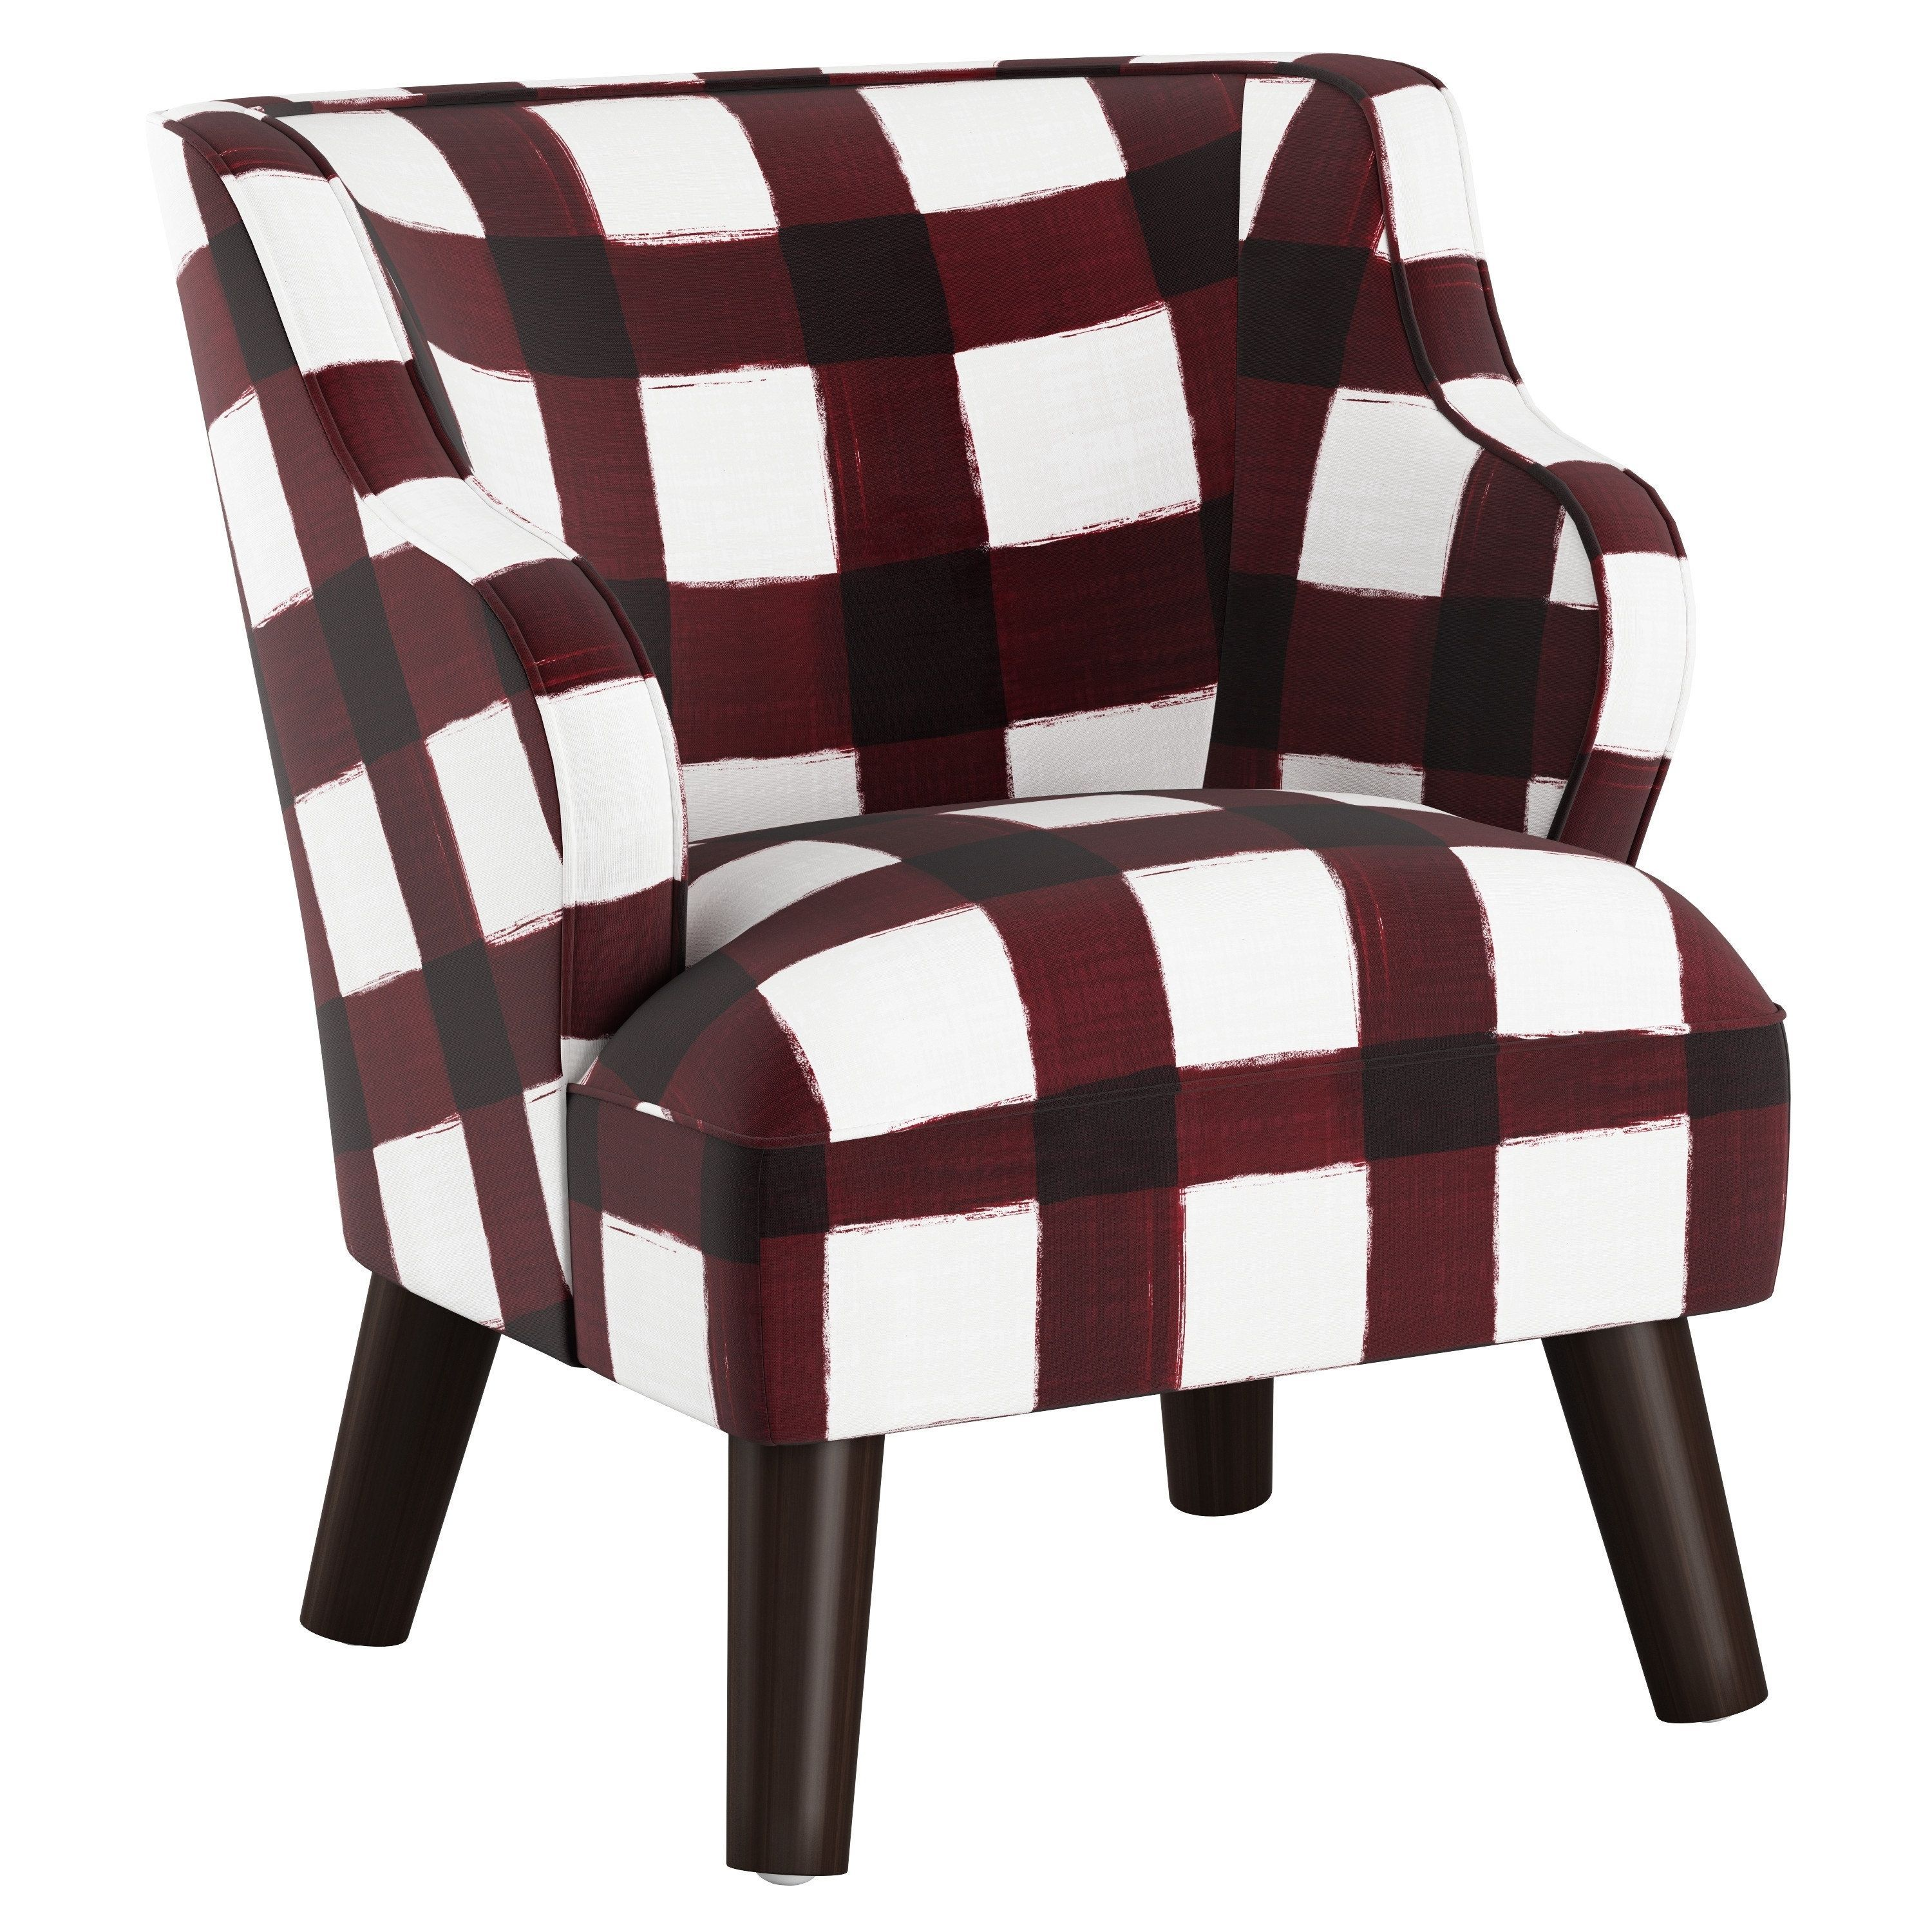 Stupendous Skyline Furniture Kids Accent Chair In Plaid Red Linen Creativecarmelina Interior Chair Design Creativecarmelinacom